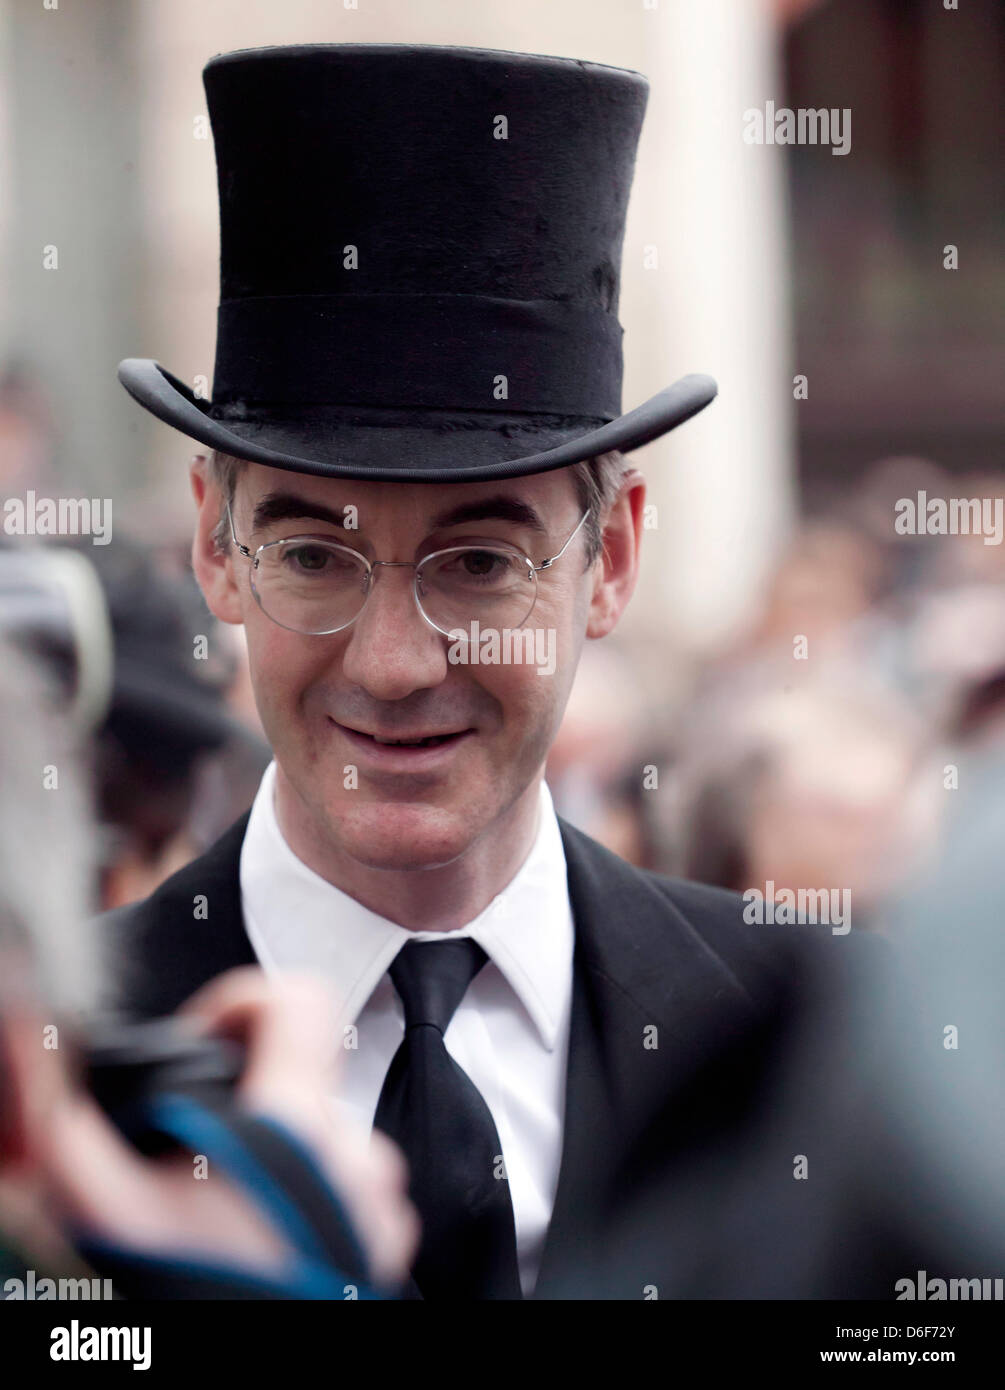 Jacob Rees-Mogg, wearing a top hat, waits to enter St Paul's Cathedral for Baroness Thatcher funeral Stock Photo